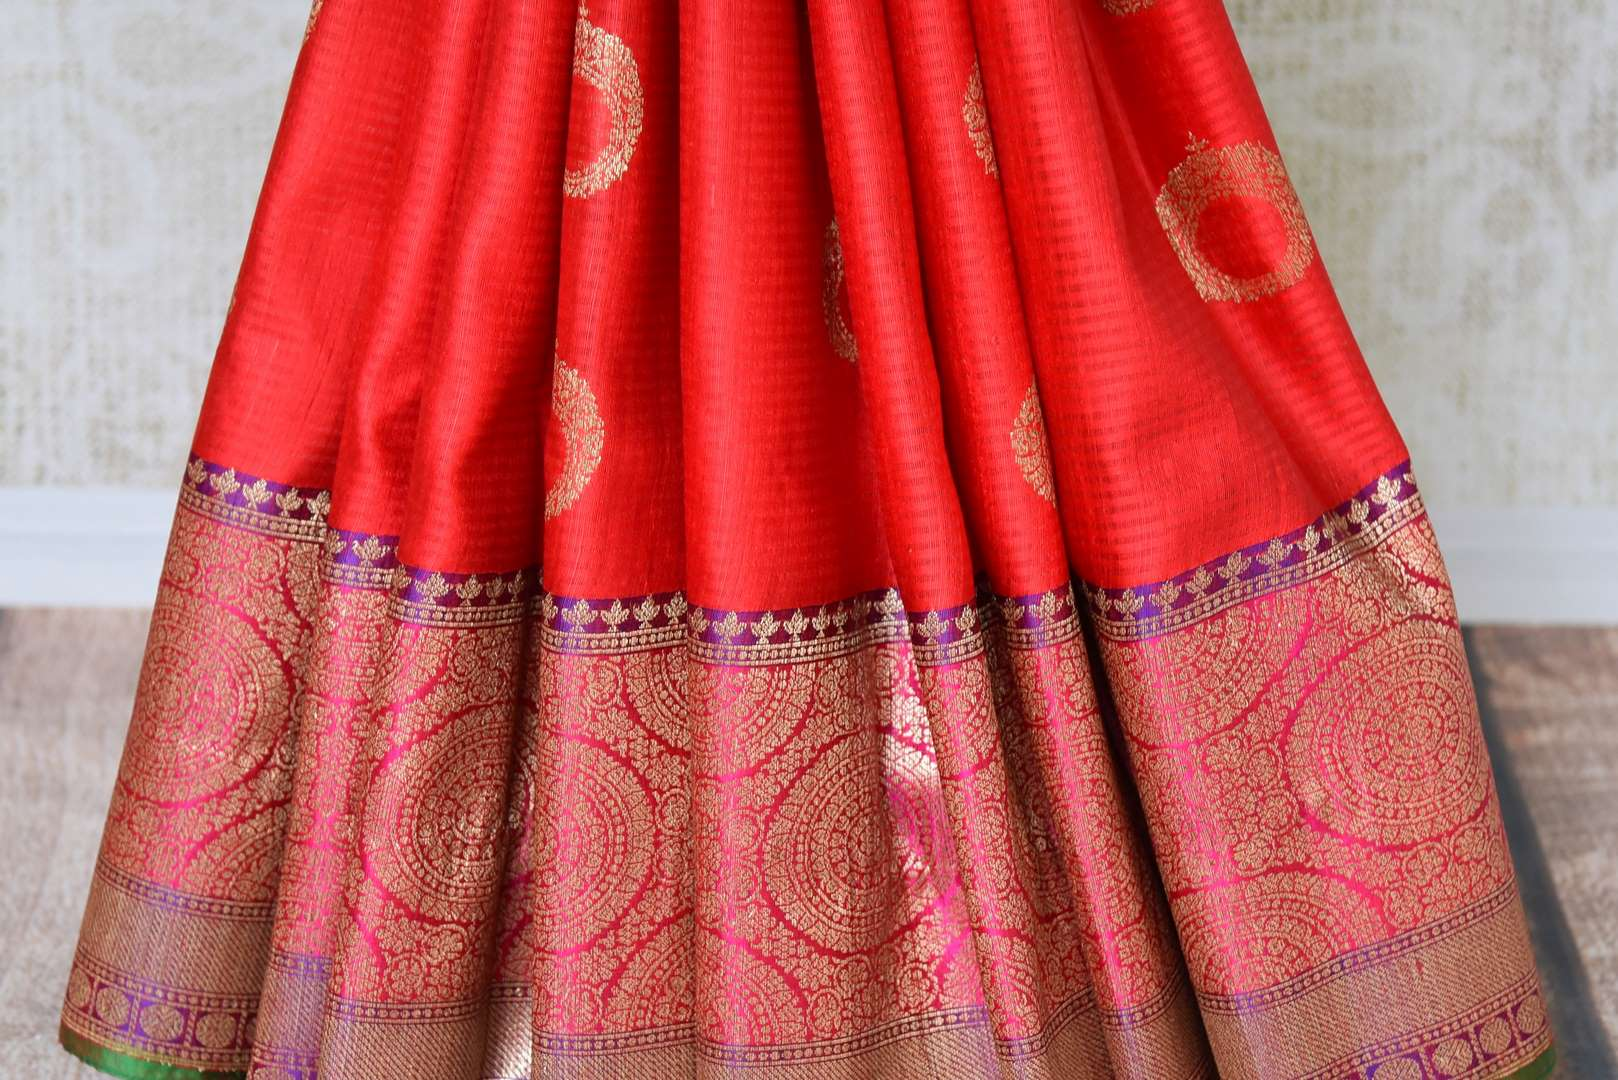 Buy bright red tussar Banarasi saree with rich zari border online in USA. Bring richness to your ethnic style with exquisite Indian sarees, traditional Banarasi sarees, silk saris from Pure Elegance Indian fashion store in USA or shop online.-pleats